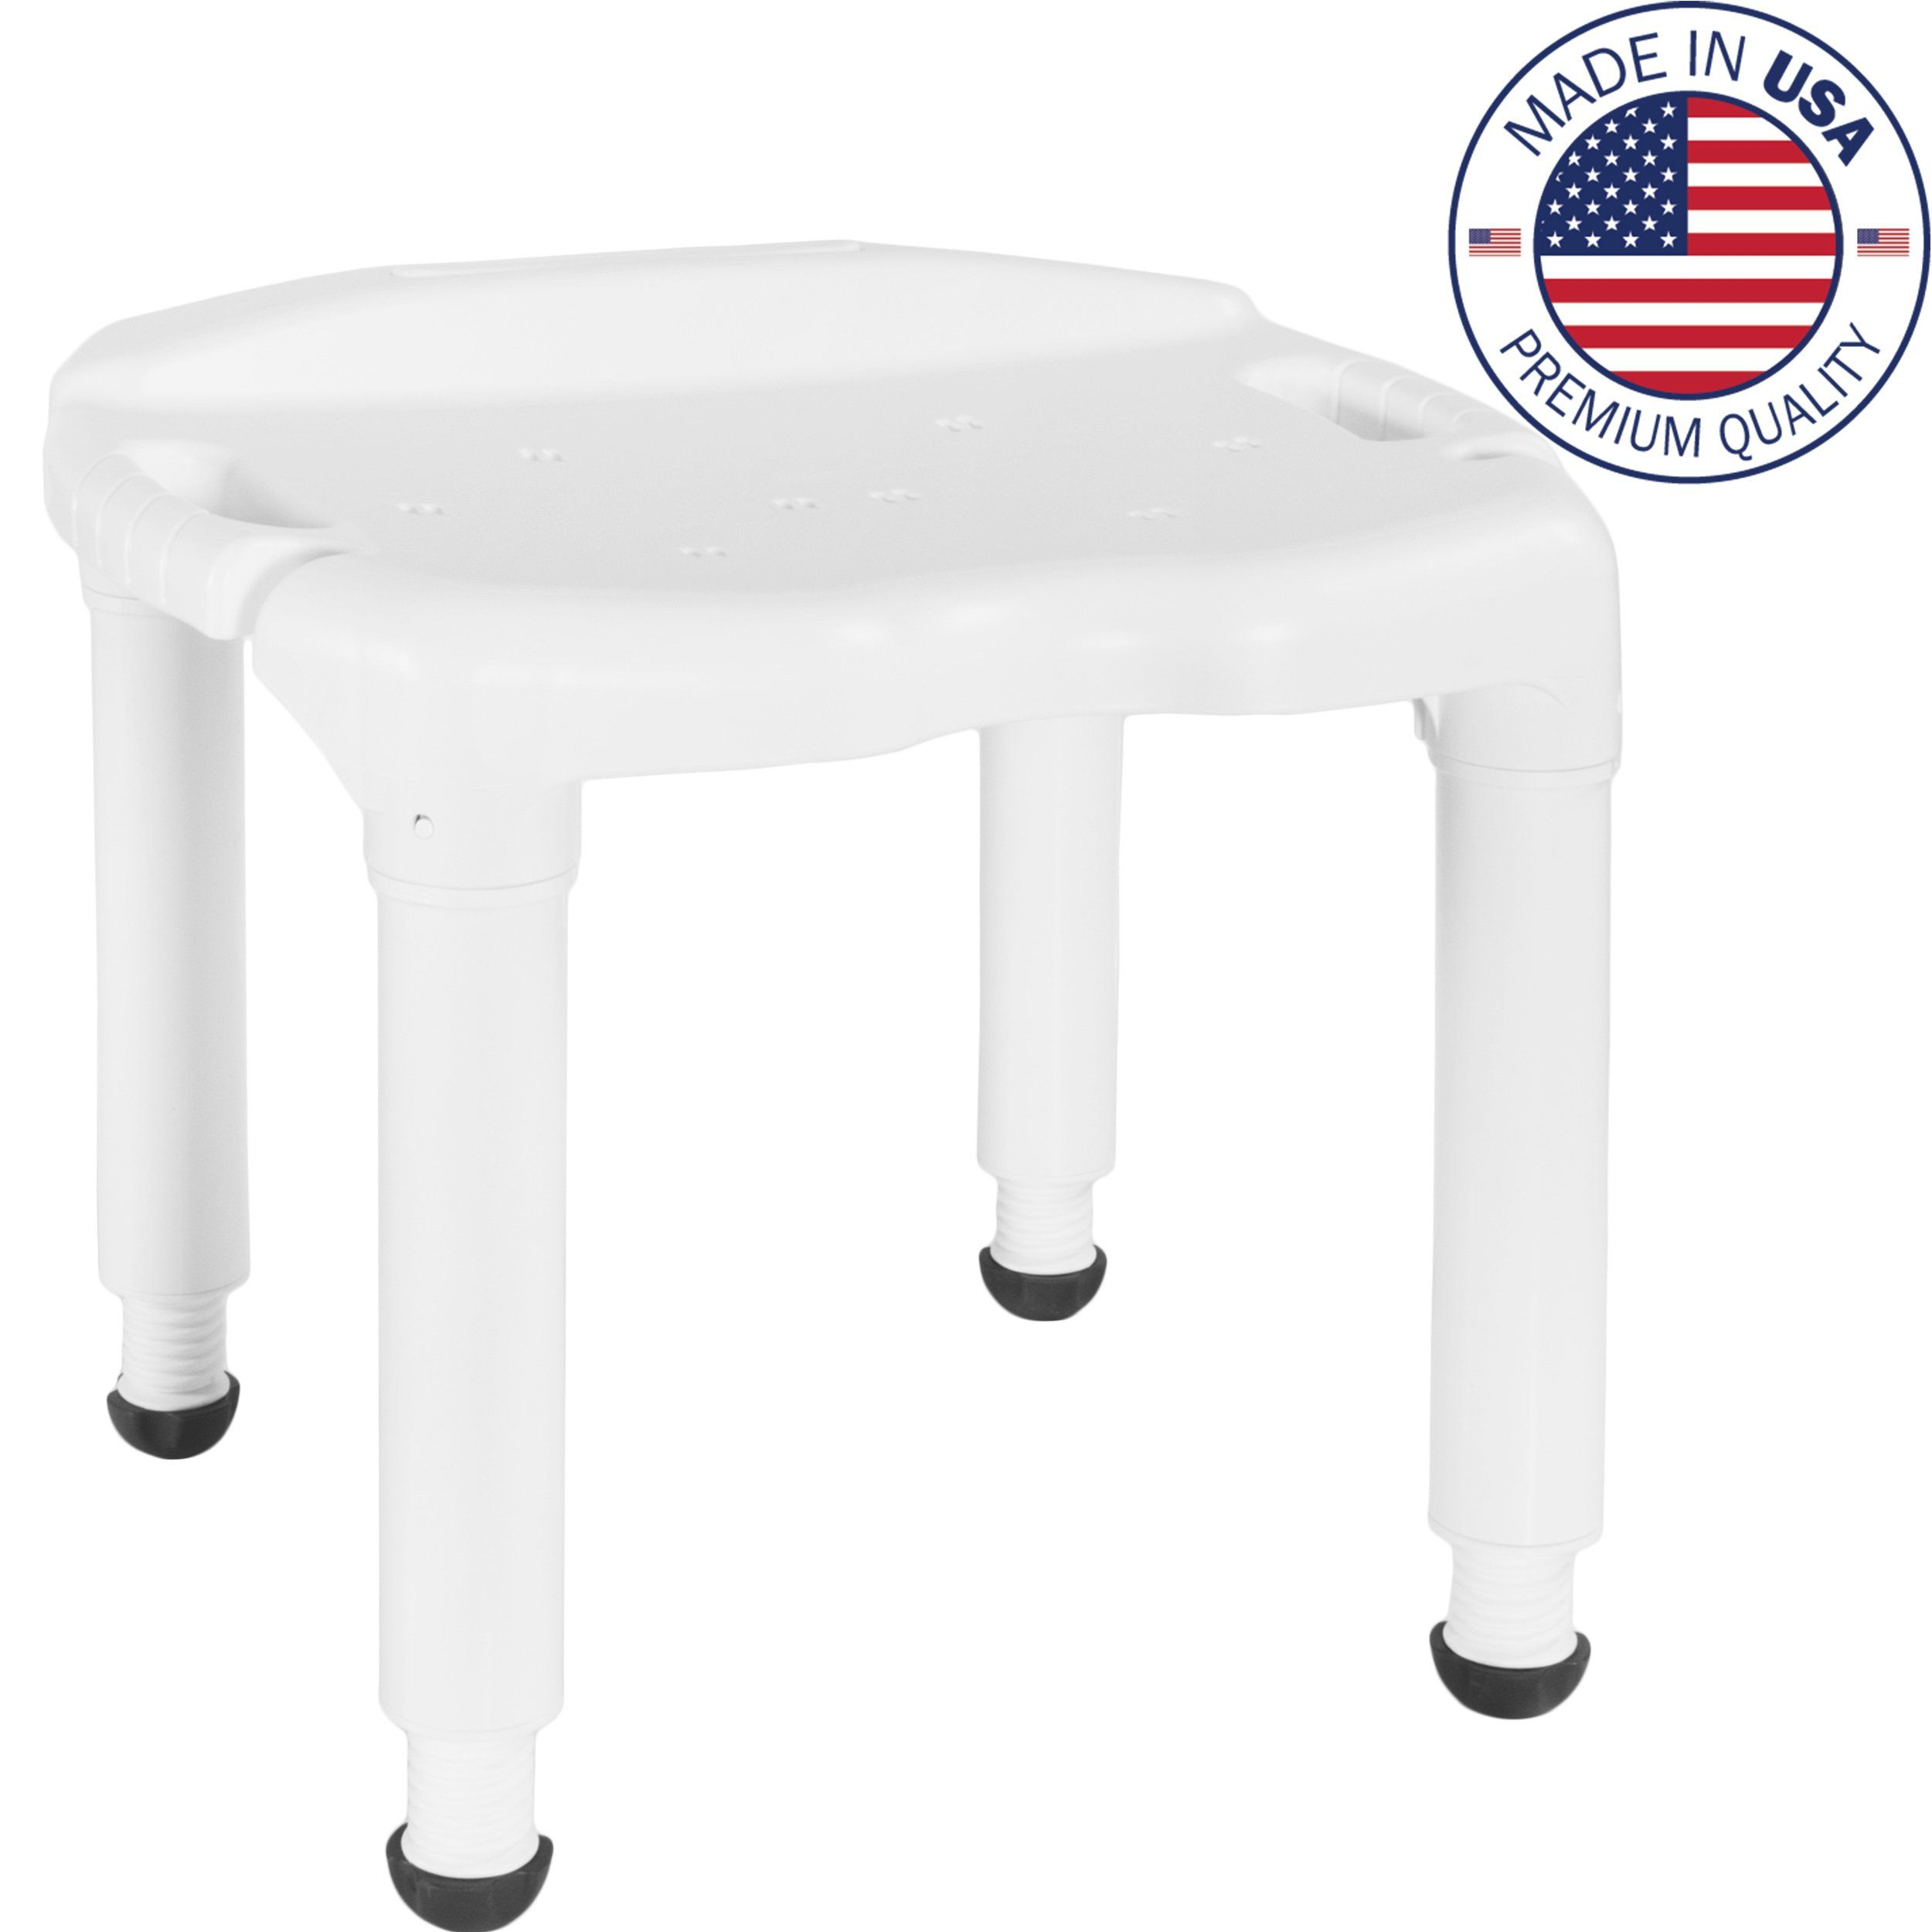 Medical Tool-Free Assembly Carex Spa Bathtub Adjustable Shower Chair ...